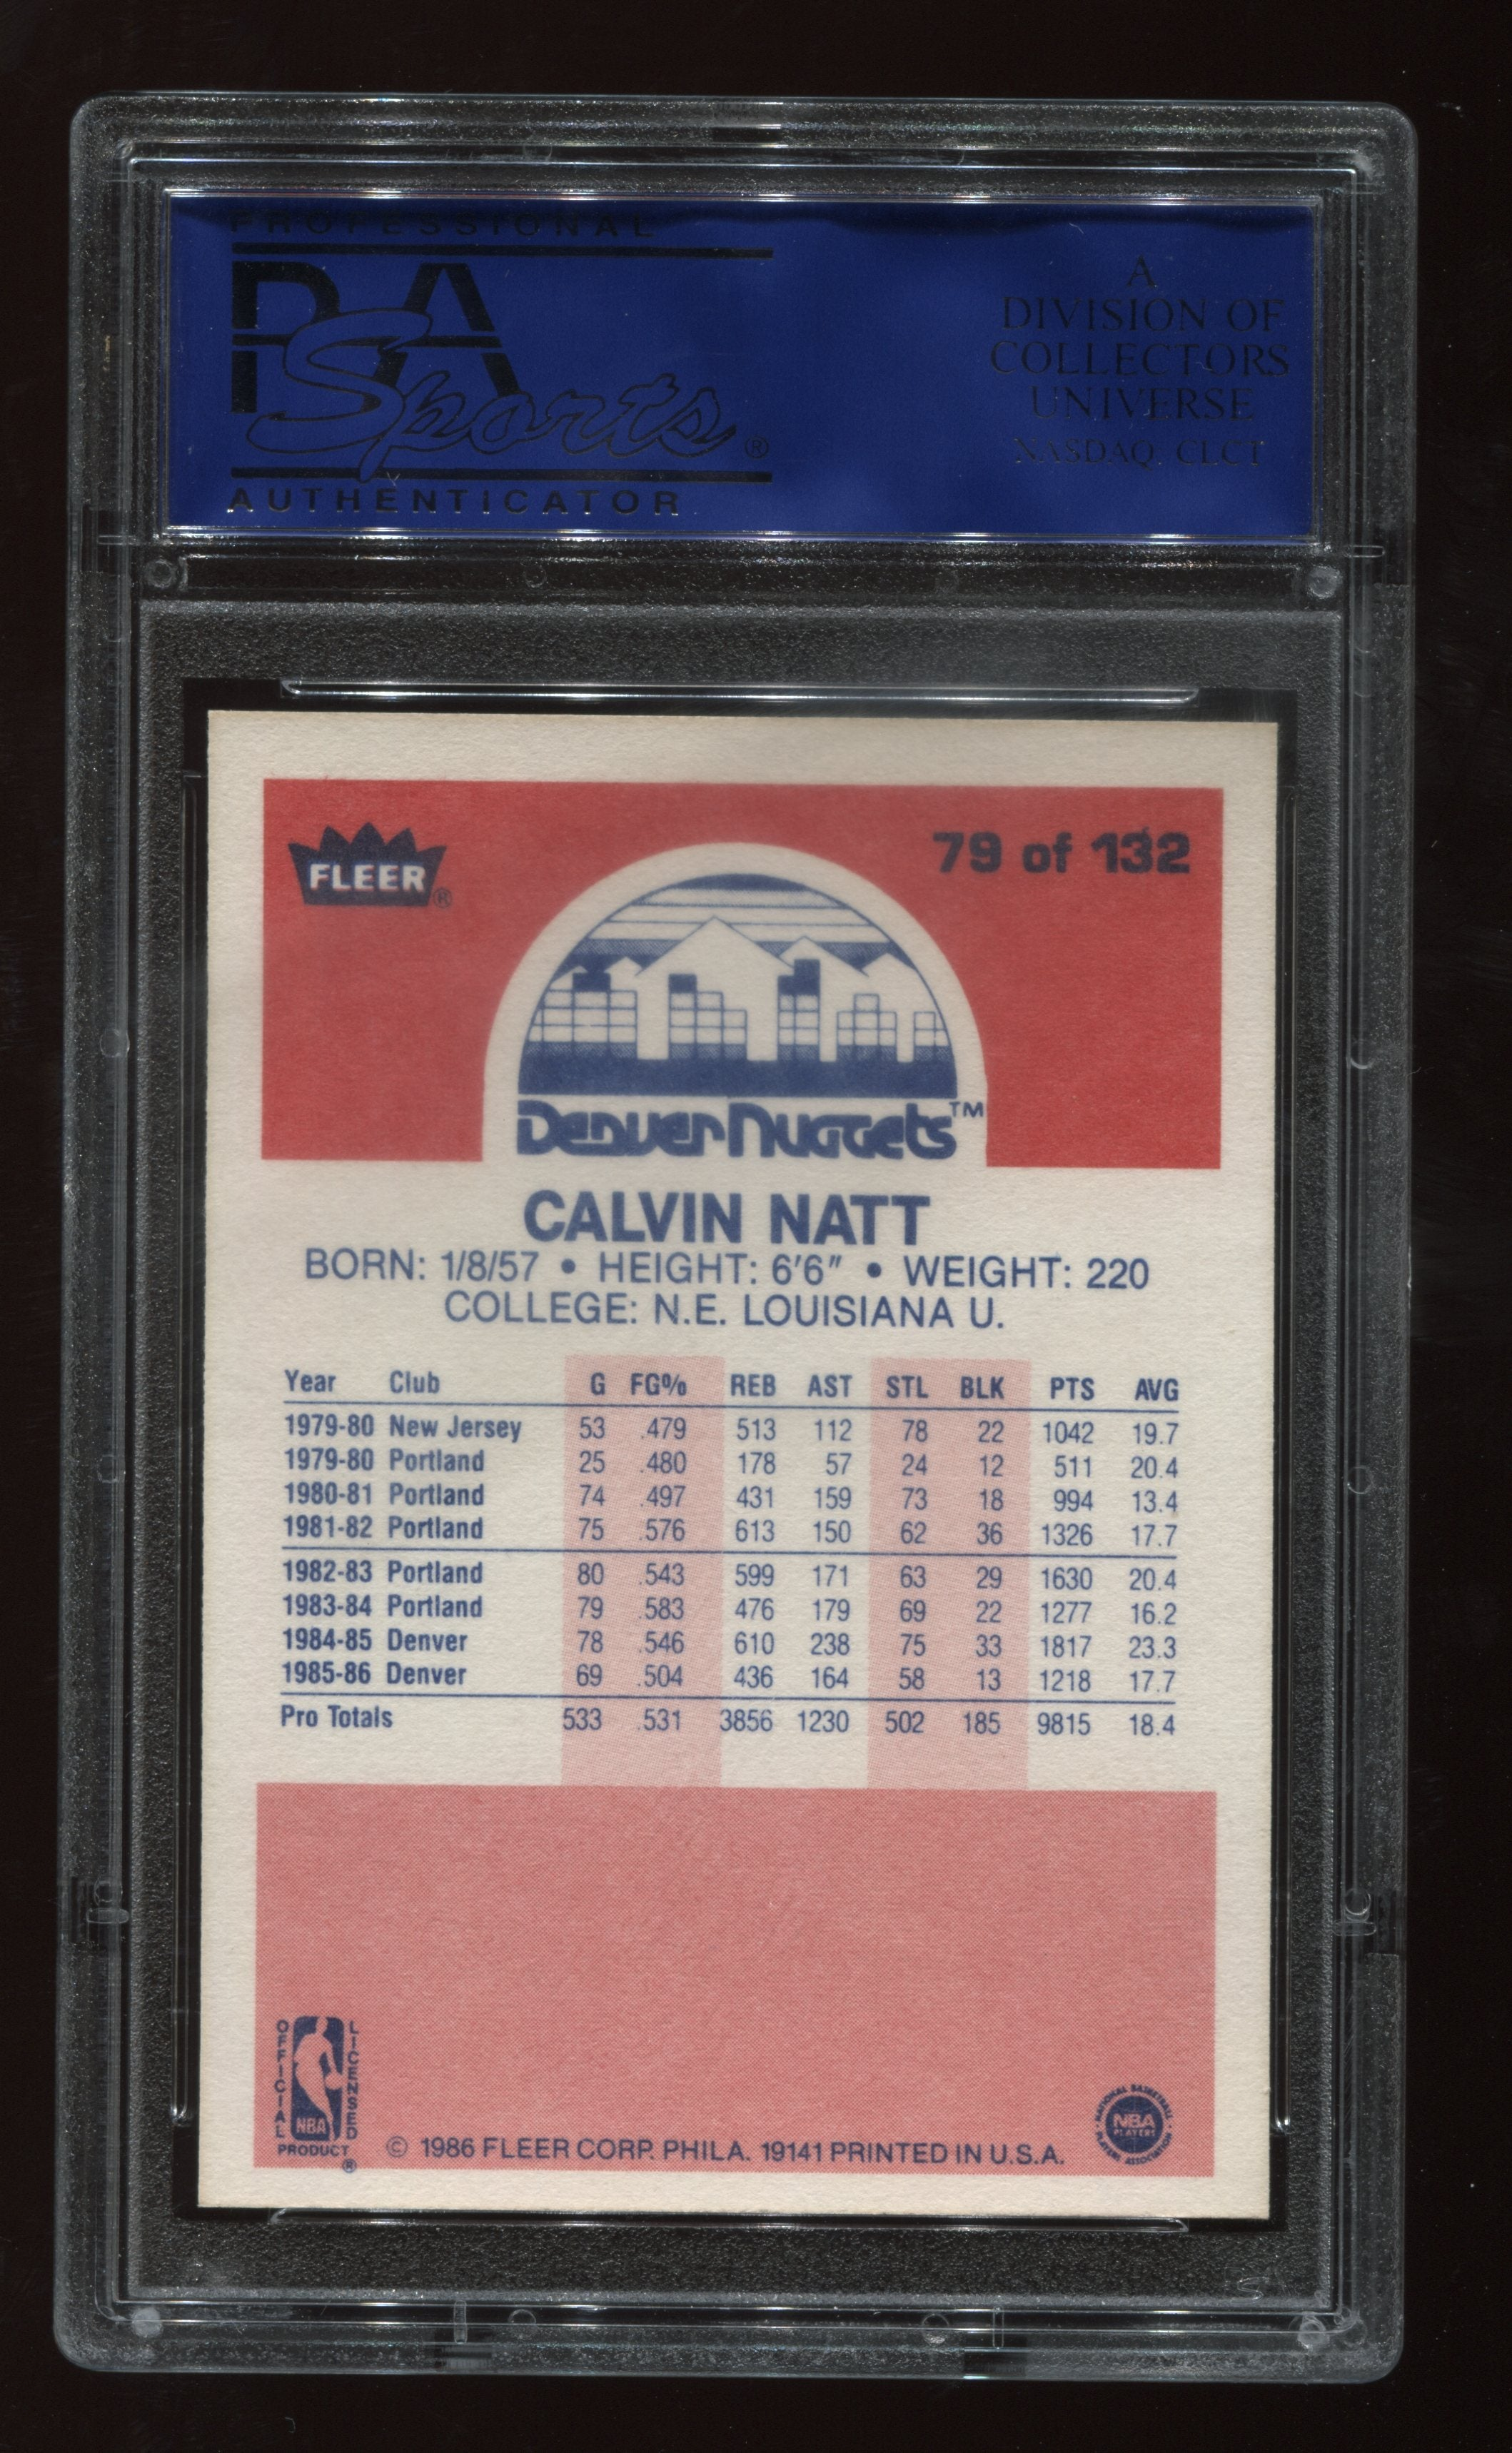 1986-87 Fleer #79 Calvin Natt PSA 9 | Eastridge Sports Cards